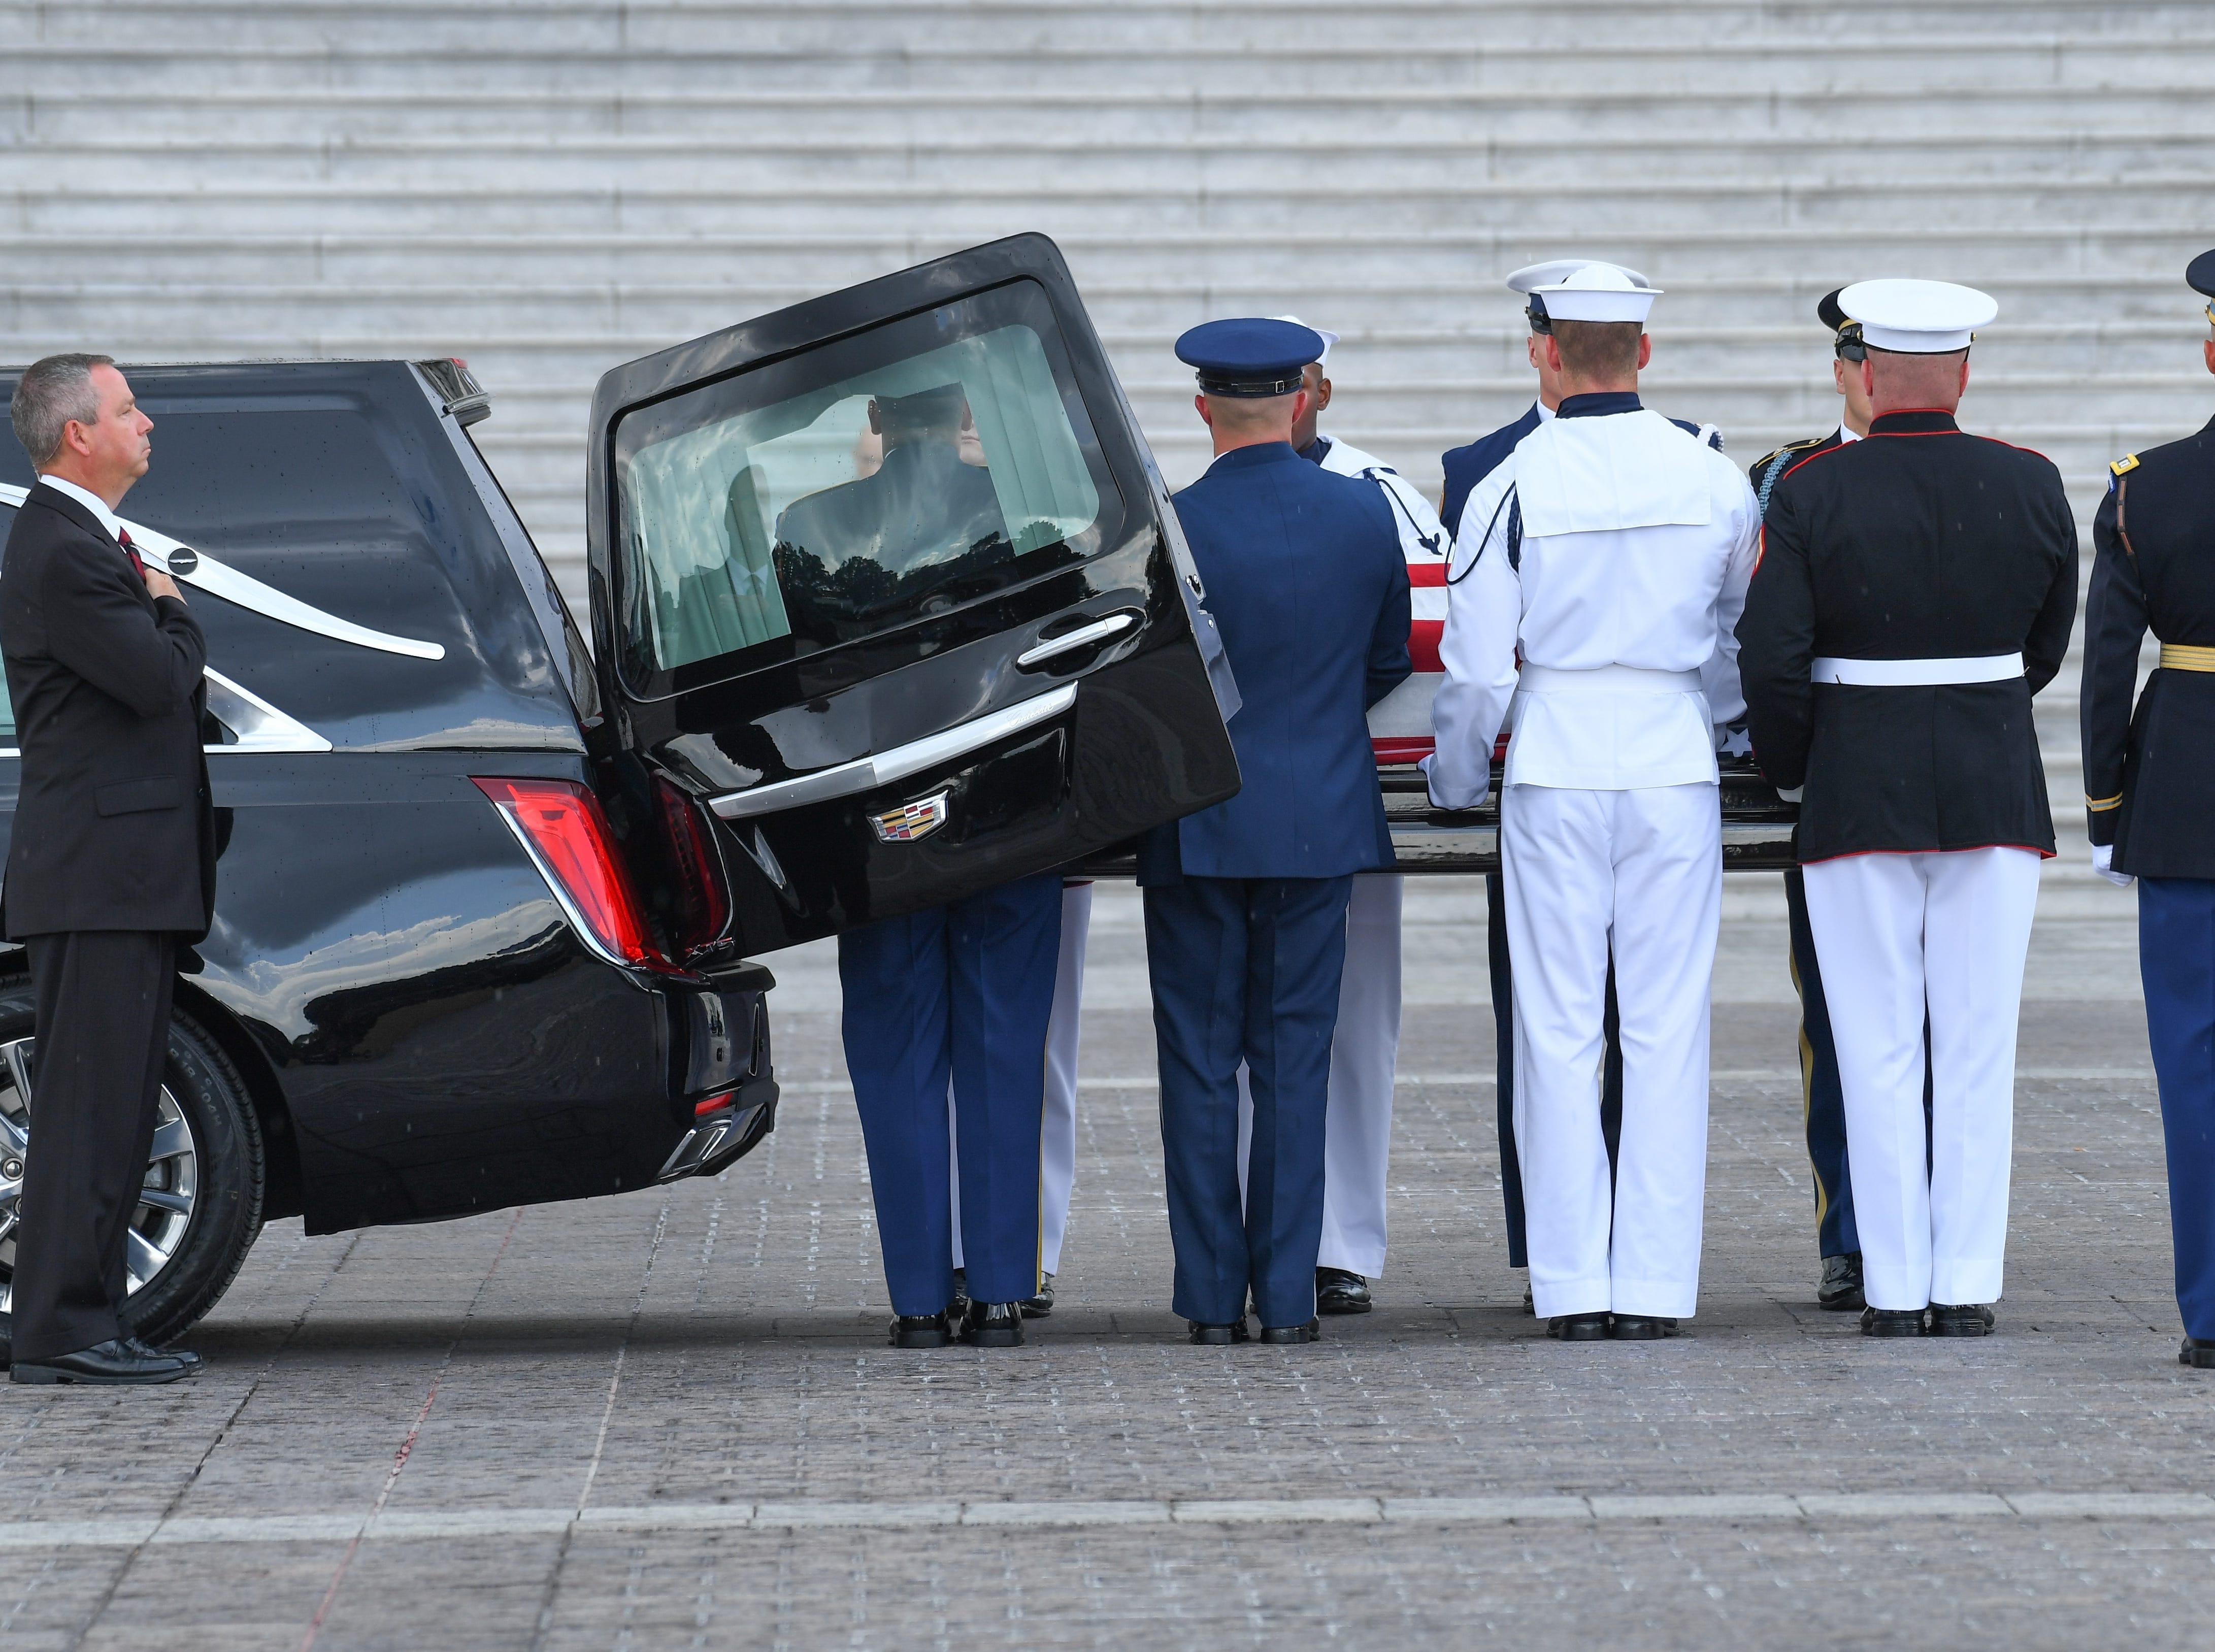 The body of John McCain arrives at the U.S. Capitol in Washington where he will lie in state on Aug. 31, 2018.